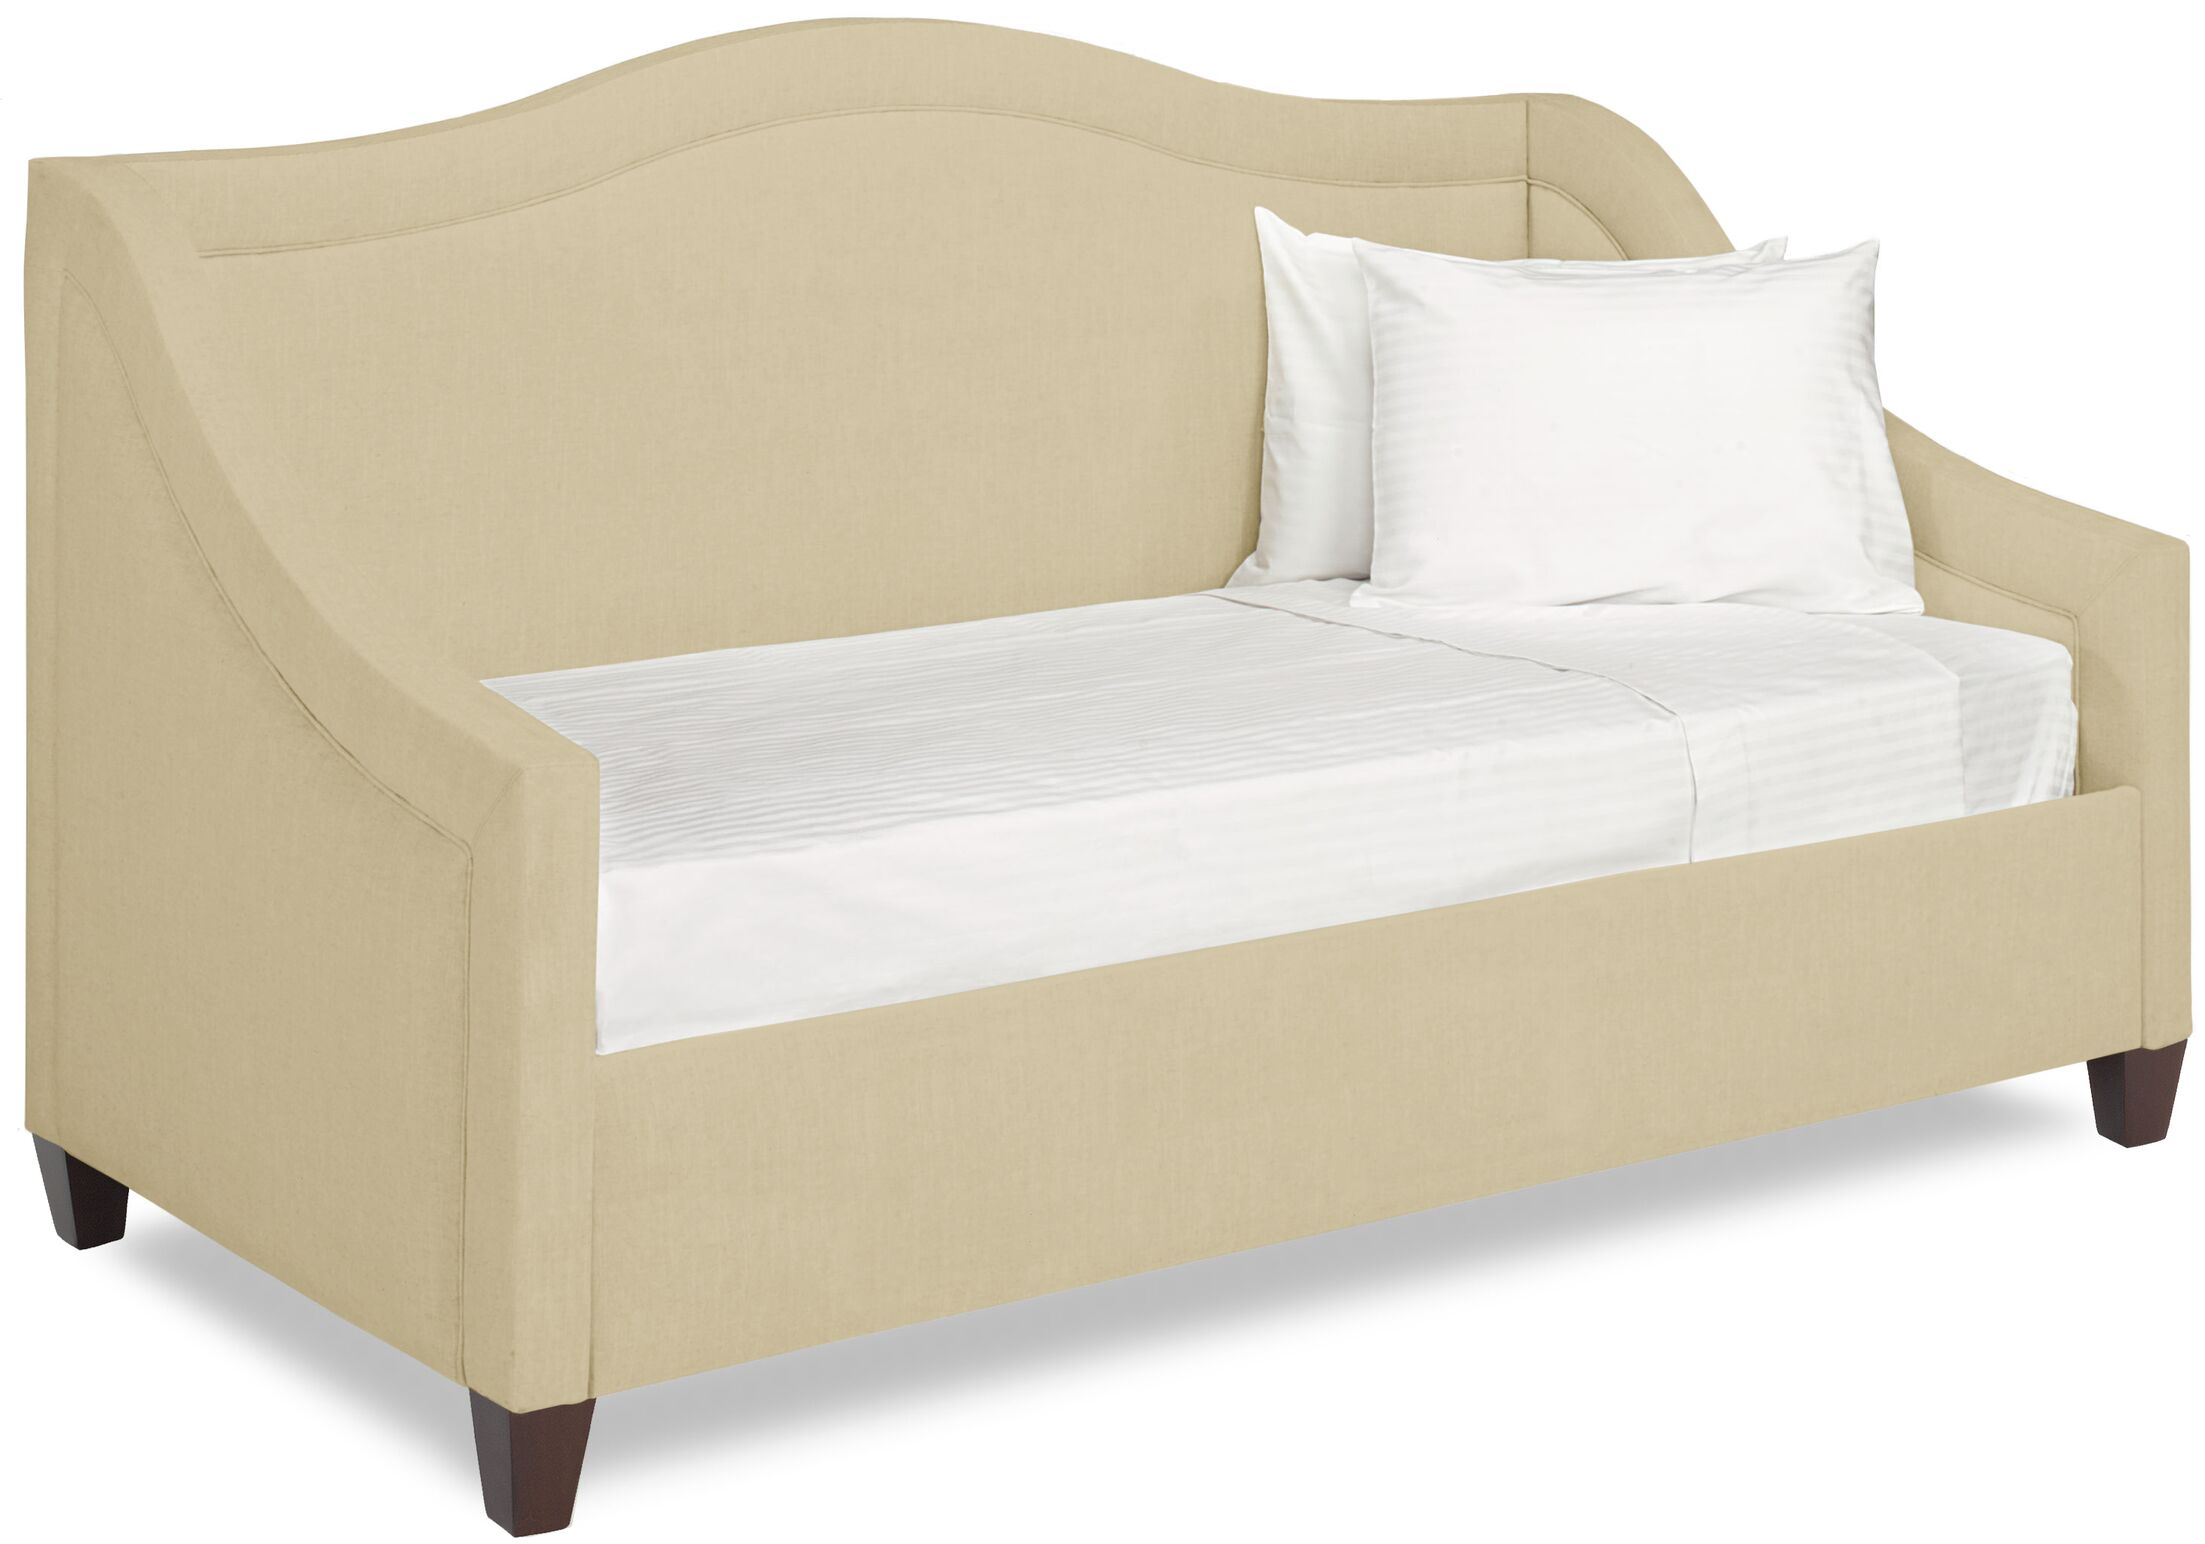 Dreamtime Daybed with Mattress Size: Twin, Color: Beige